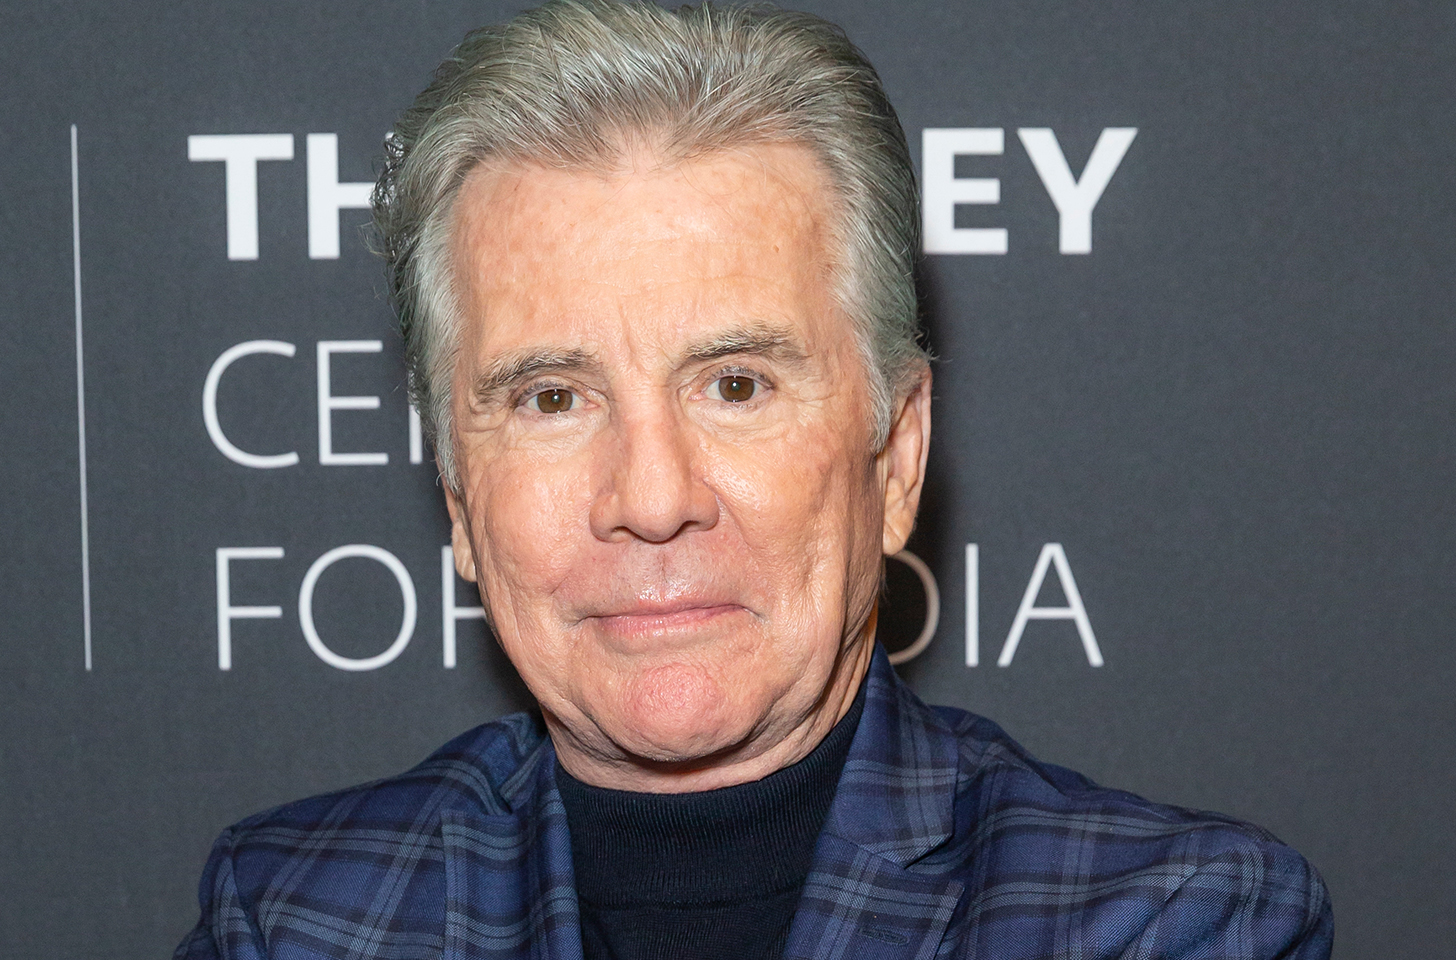 'America's Most Wanted' Host John Walsh Sounds Off About Gabby Petito's Fiance